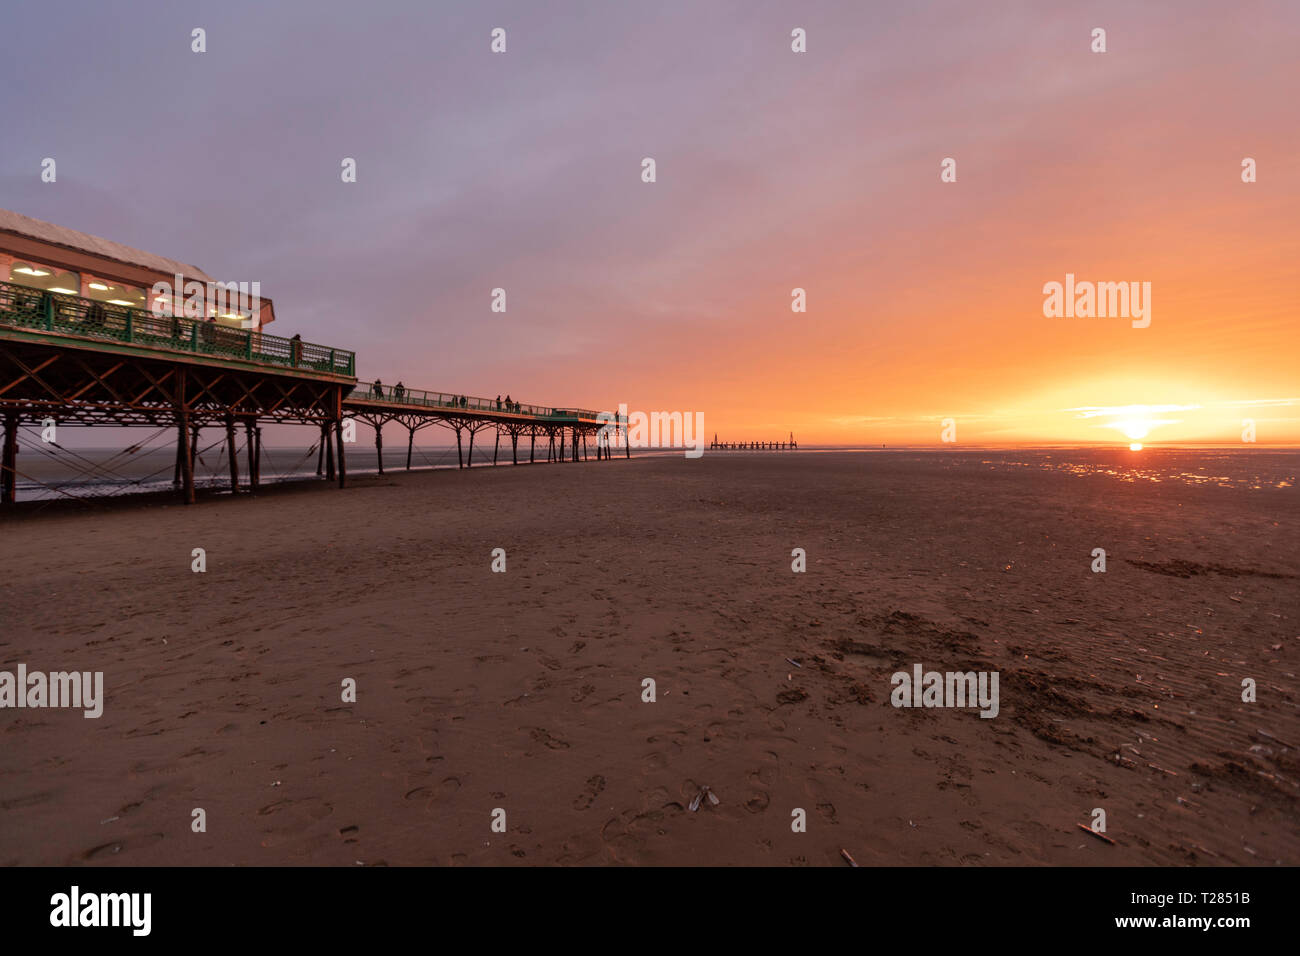 St Anne's Pier, a Victorian pier, at sunset in the English seaside resort of St Anne's-on-the-Sea, Lytham St Annes, Lancashire, UK - Stock Image